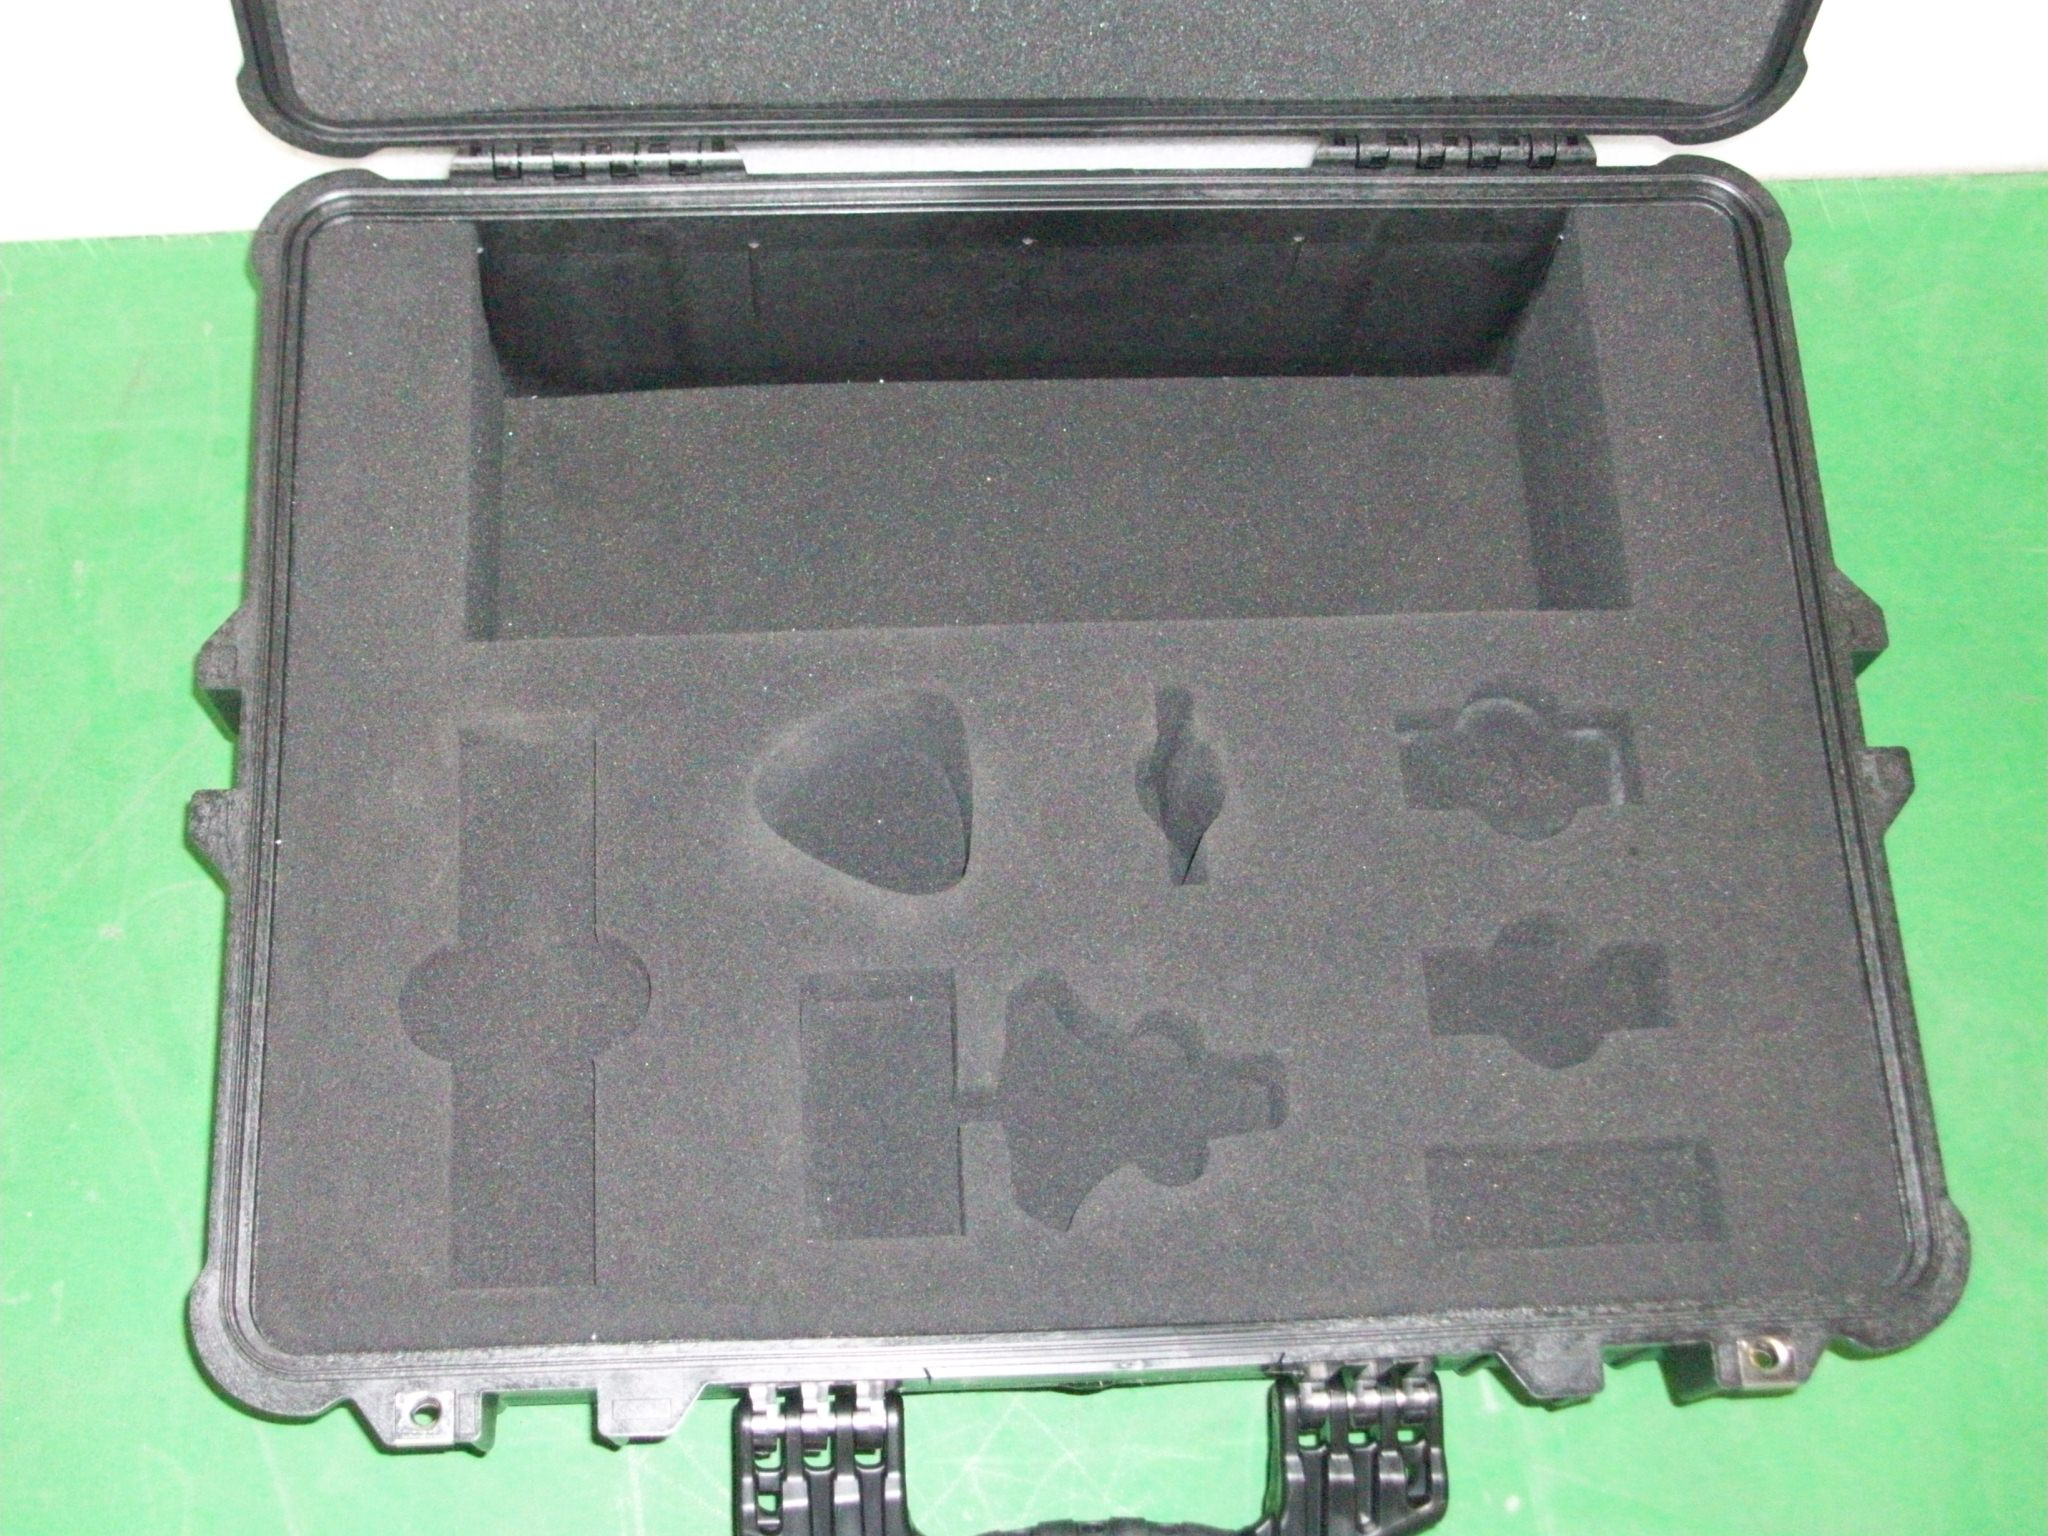 Print # 6471 - Pelican 1600 Case w/ Custom Foam Insert for (1) Infra-Red Wireless Remote Control. By Nelson Case Corp